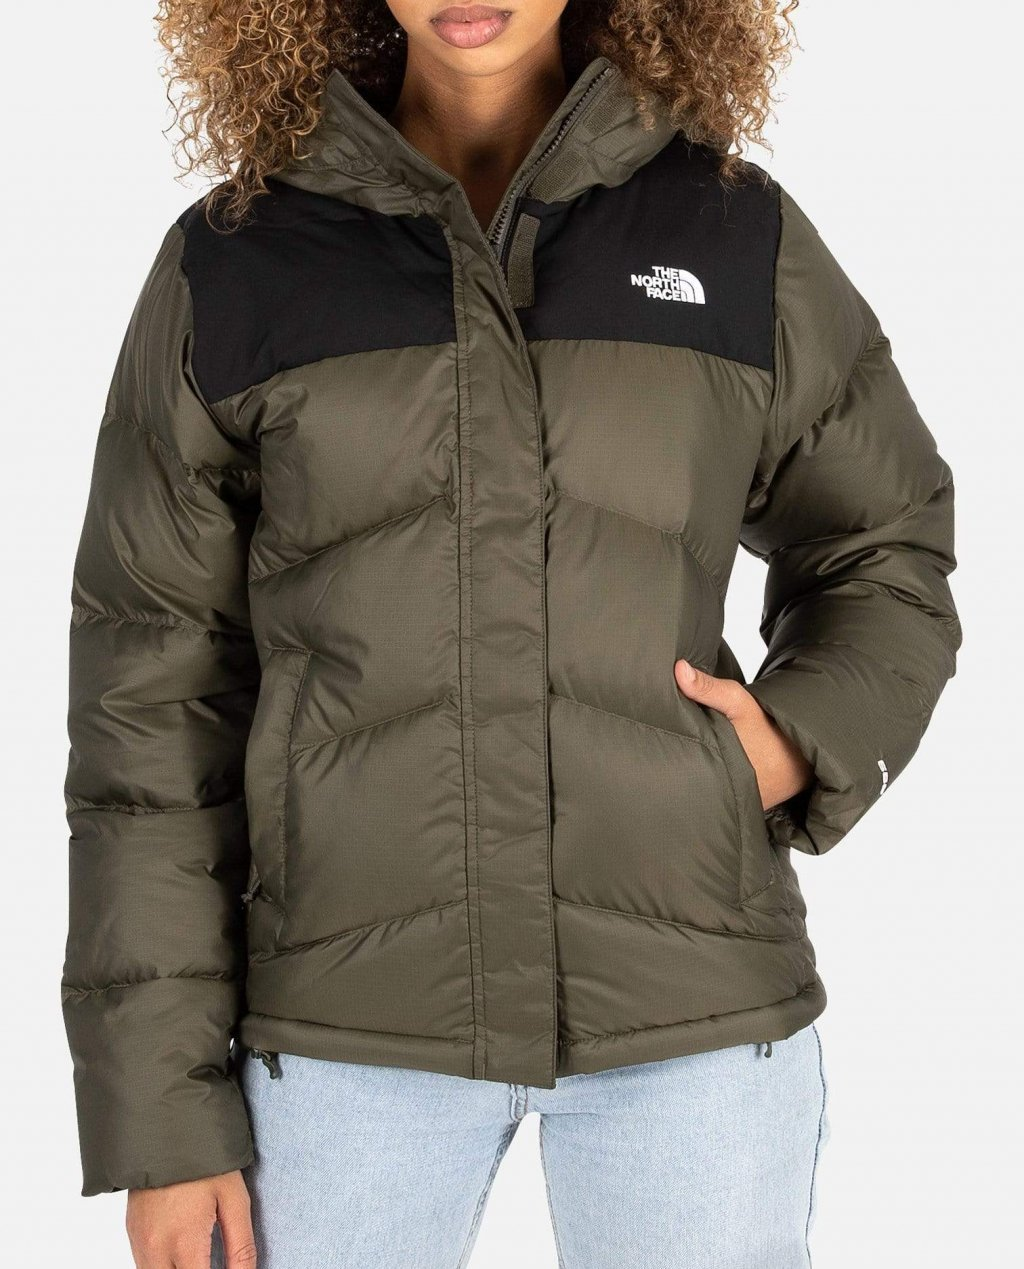 THE NORTH FACE Balham Insulated Jacket